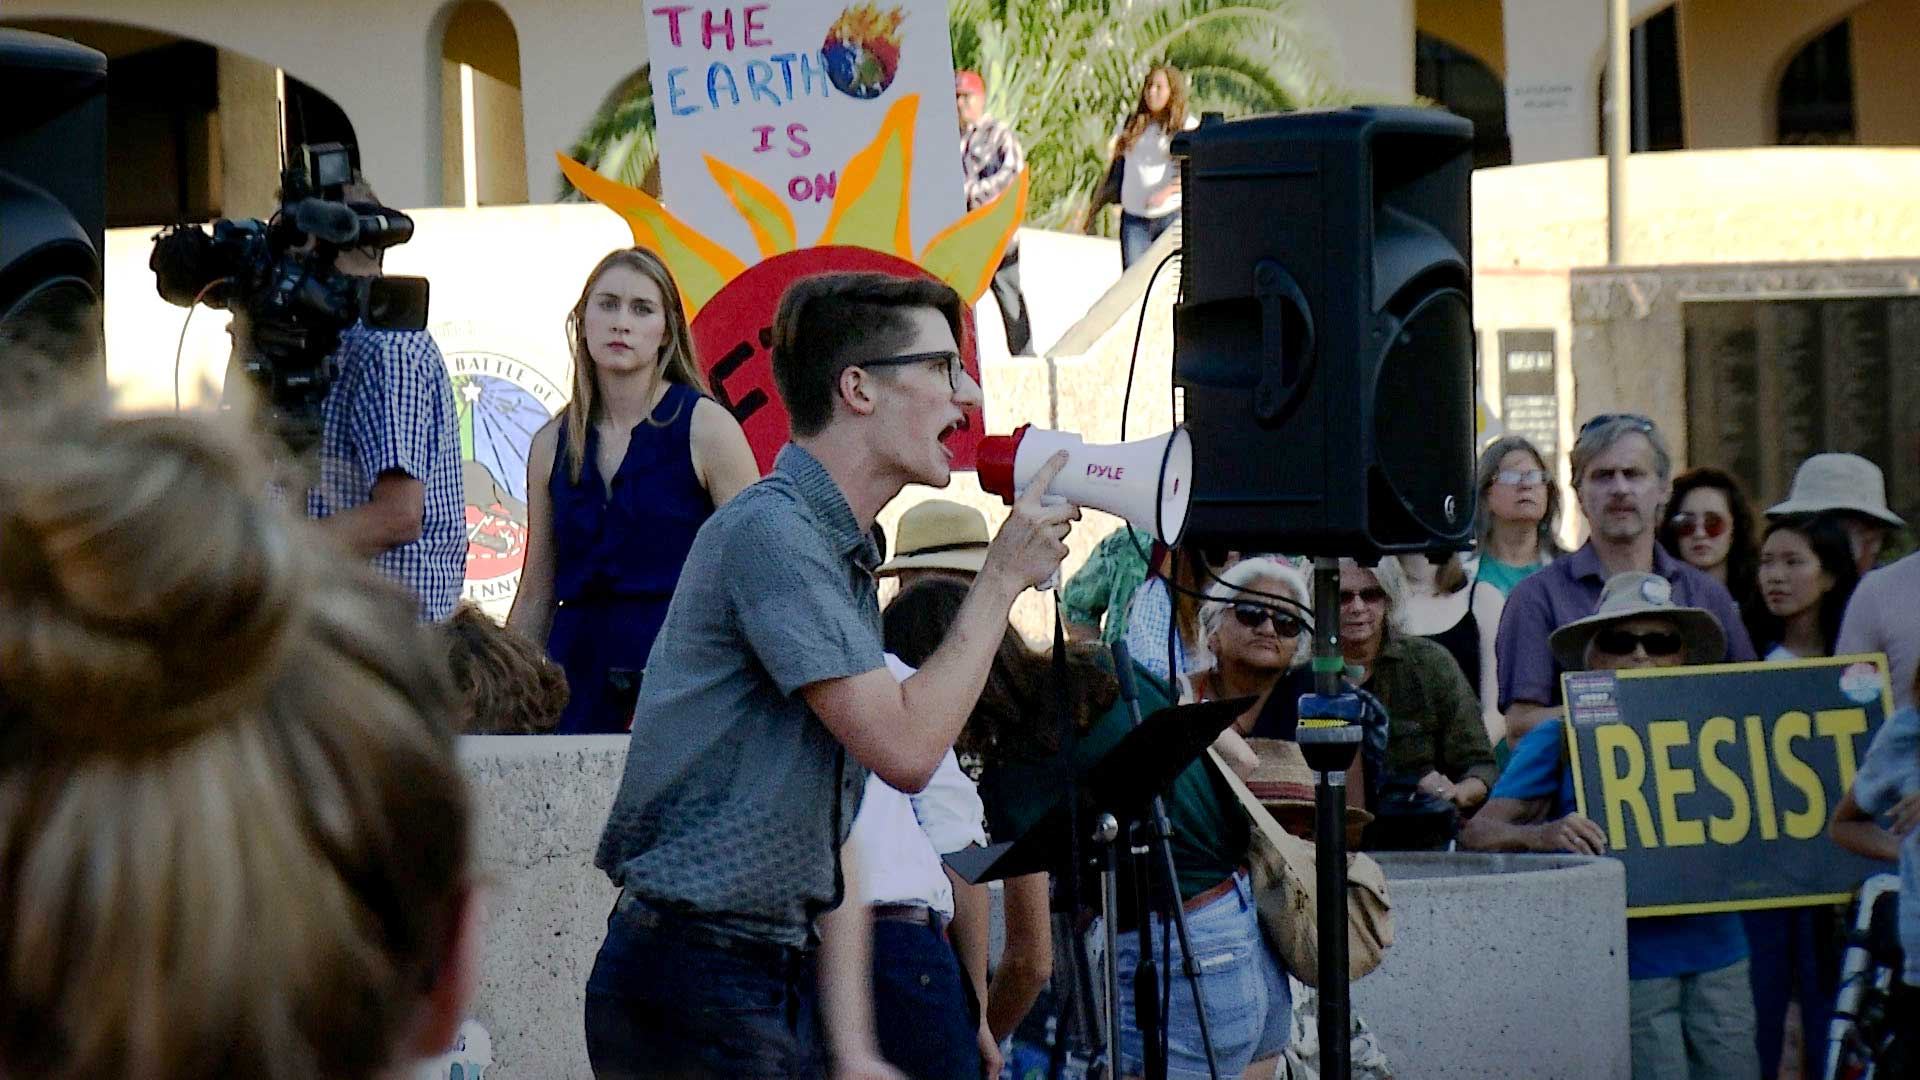 University of Arizona sophomore Kyle Kline speaks to a crowd gathered at a climate strike protest at El Presidio Park in Tucson on Sept. 20, 2019.